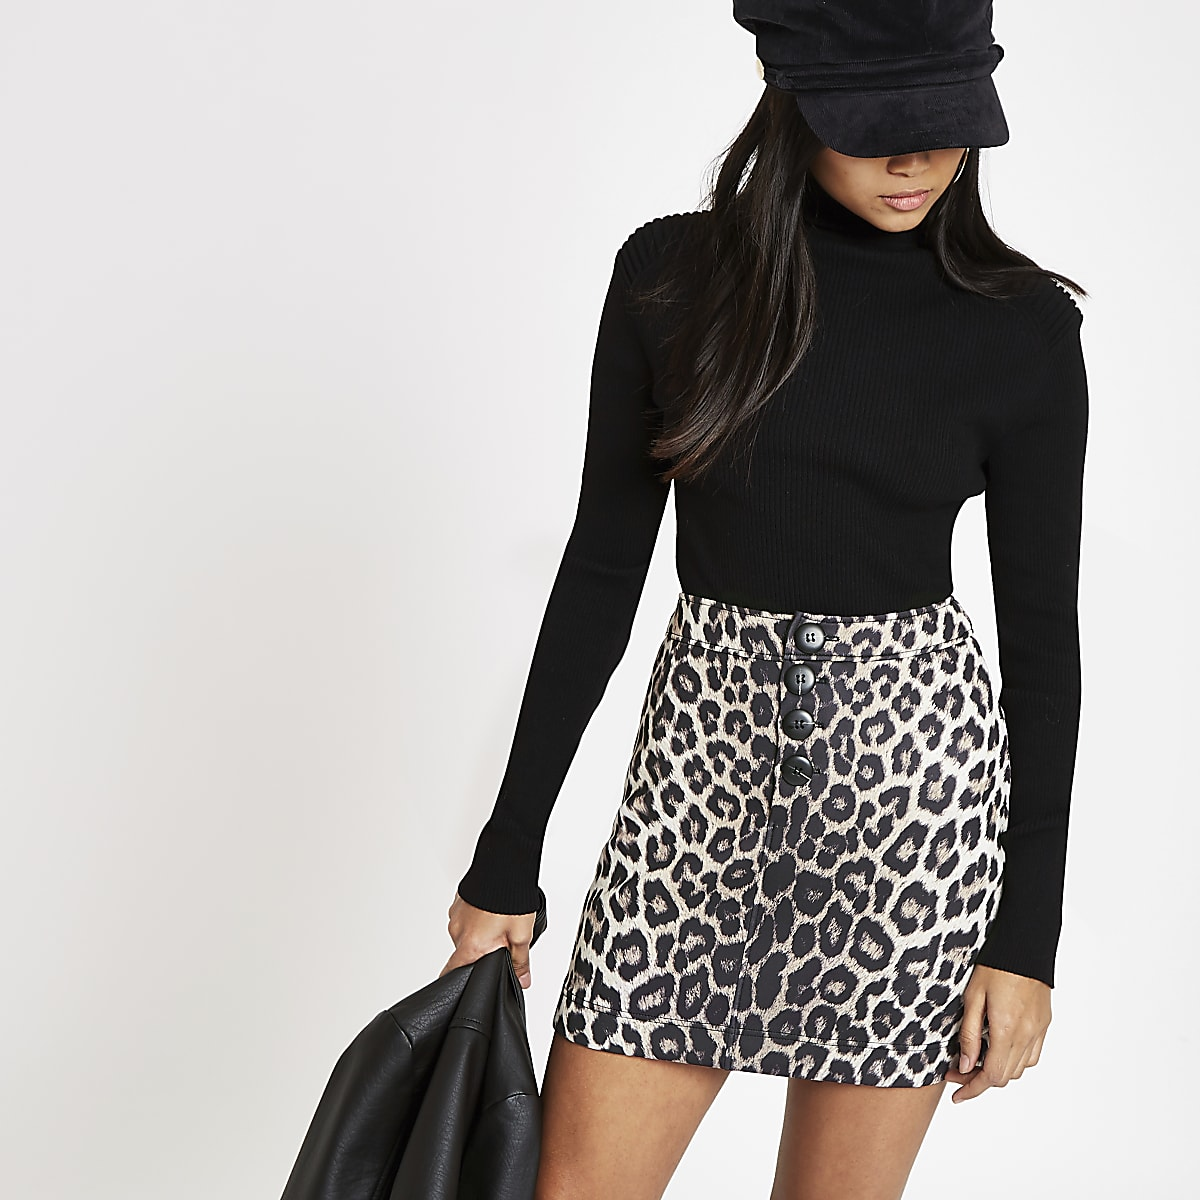 Petite grey leopard print button skirt